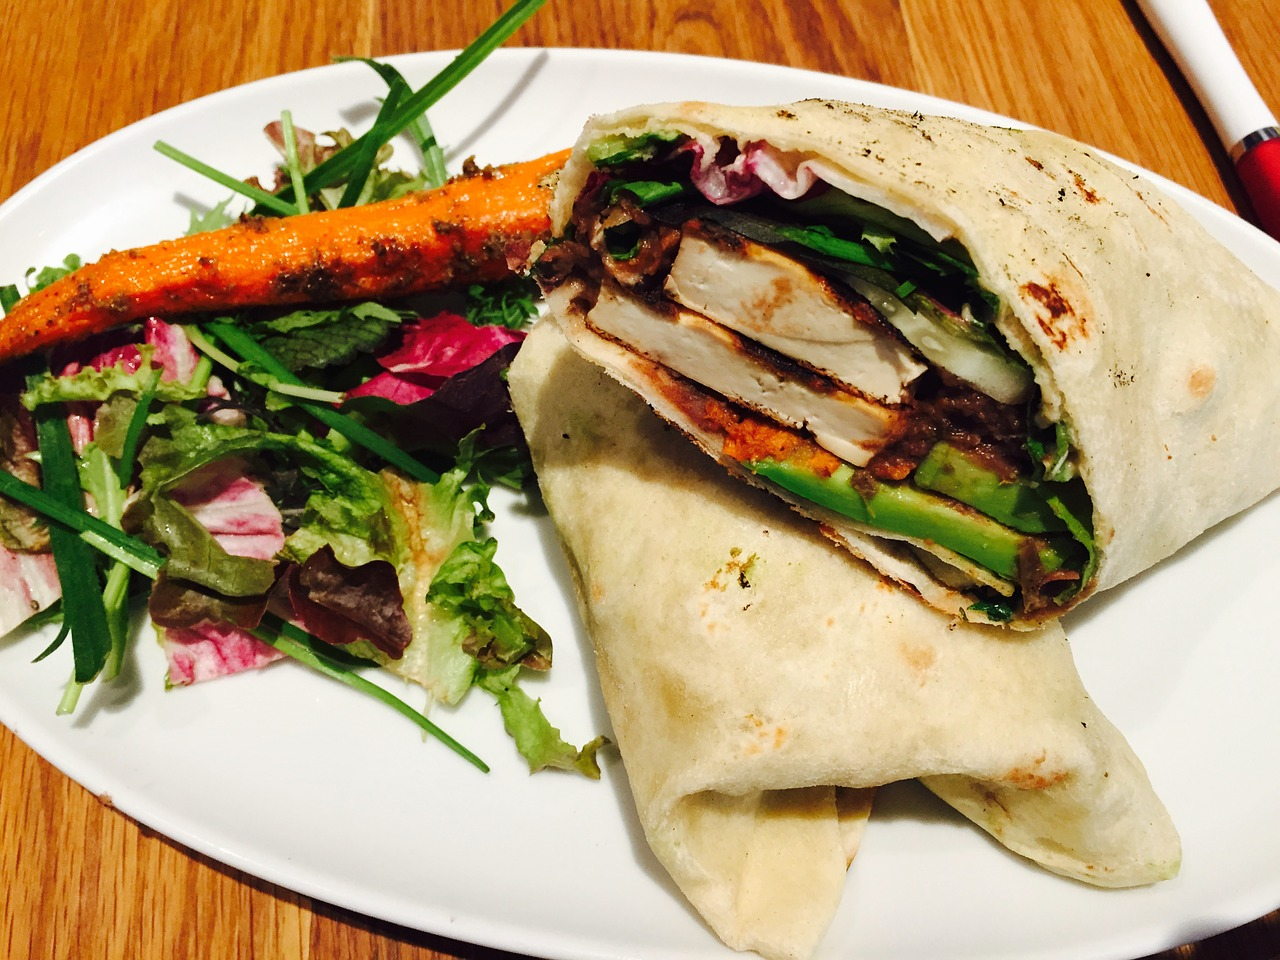 Vegan Wrap | Plant Protein Alliance of Alberta (PPAA)